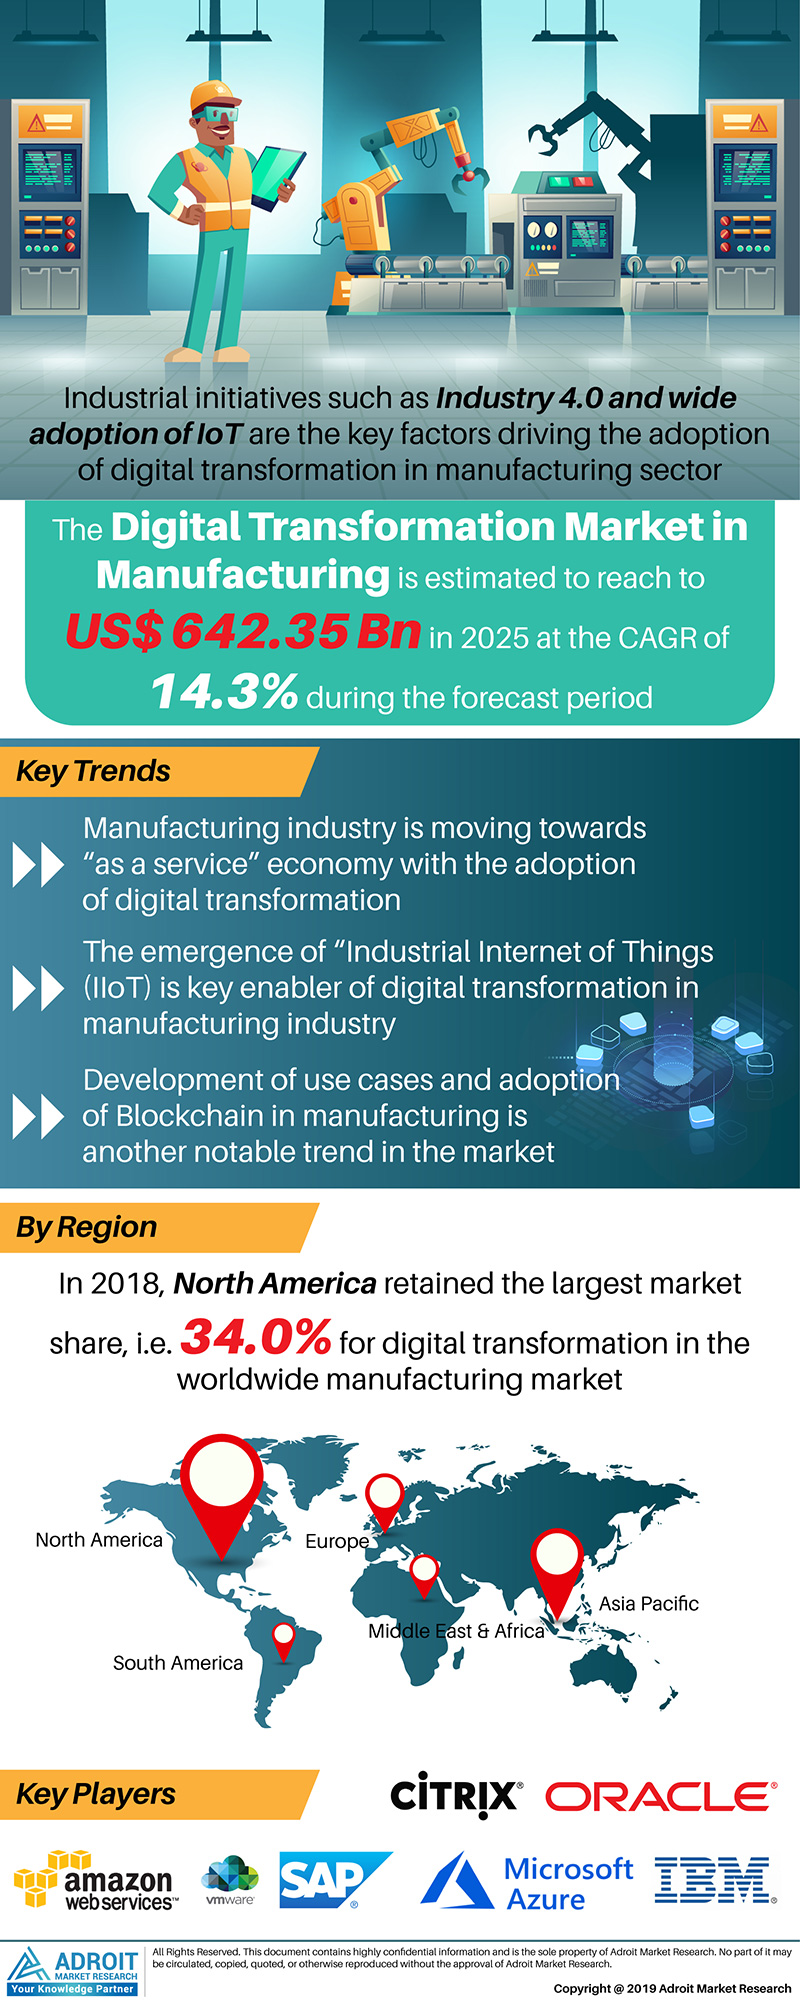 Global Digital Transformation in Manufacturing Market Size 2017 By Type, End-Use, Region and Forecast 2019 to 2025